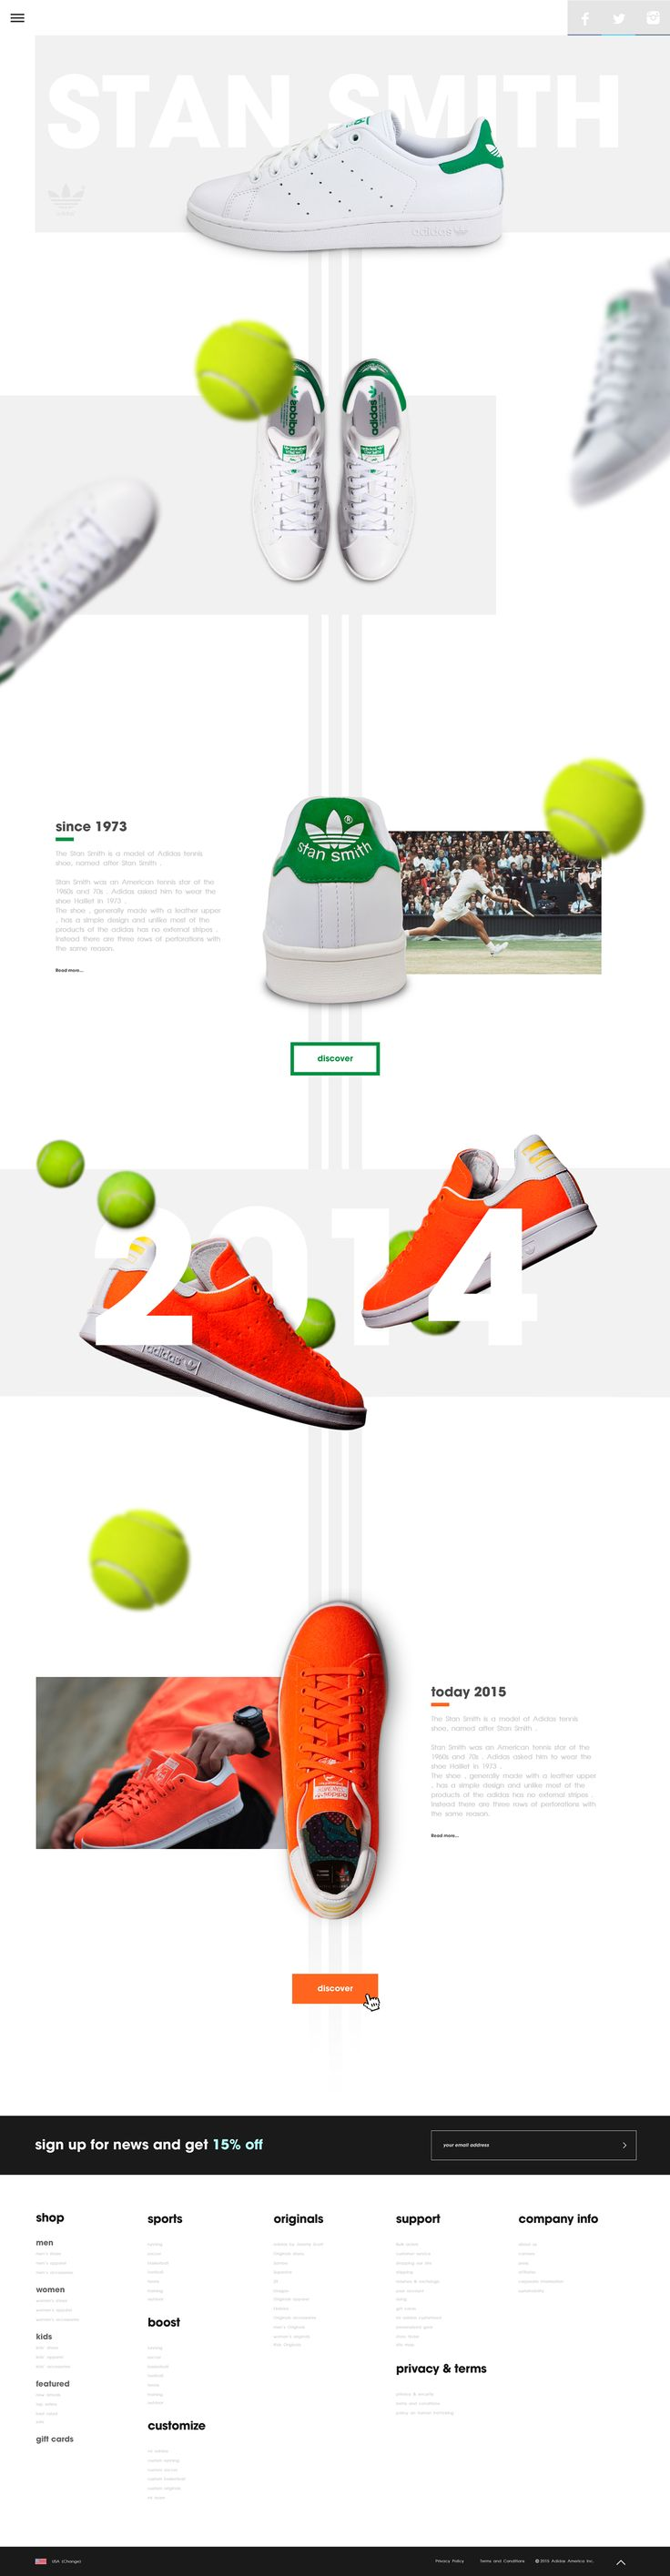 Adidas Stan Smith Ui design concept by Rosario Sarracino on Behance